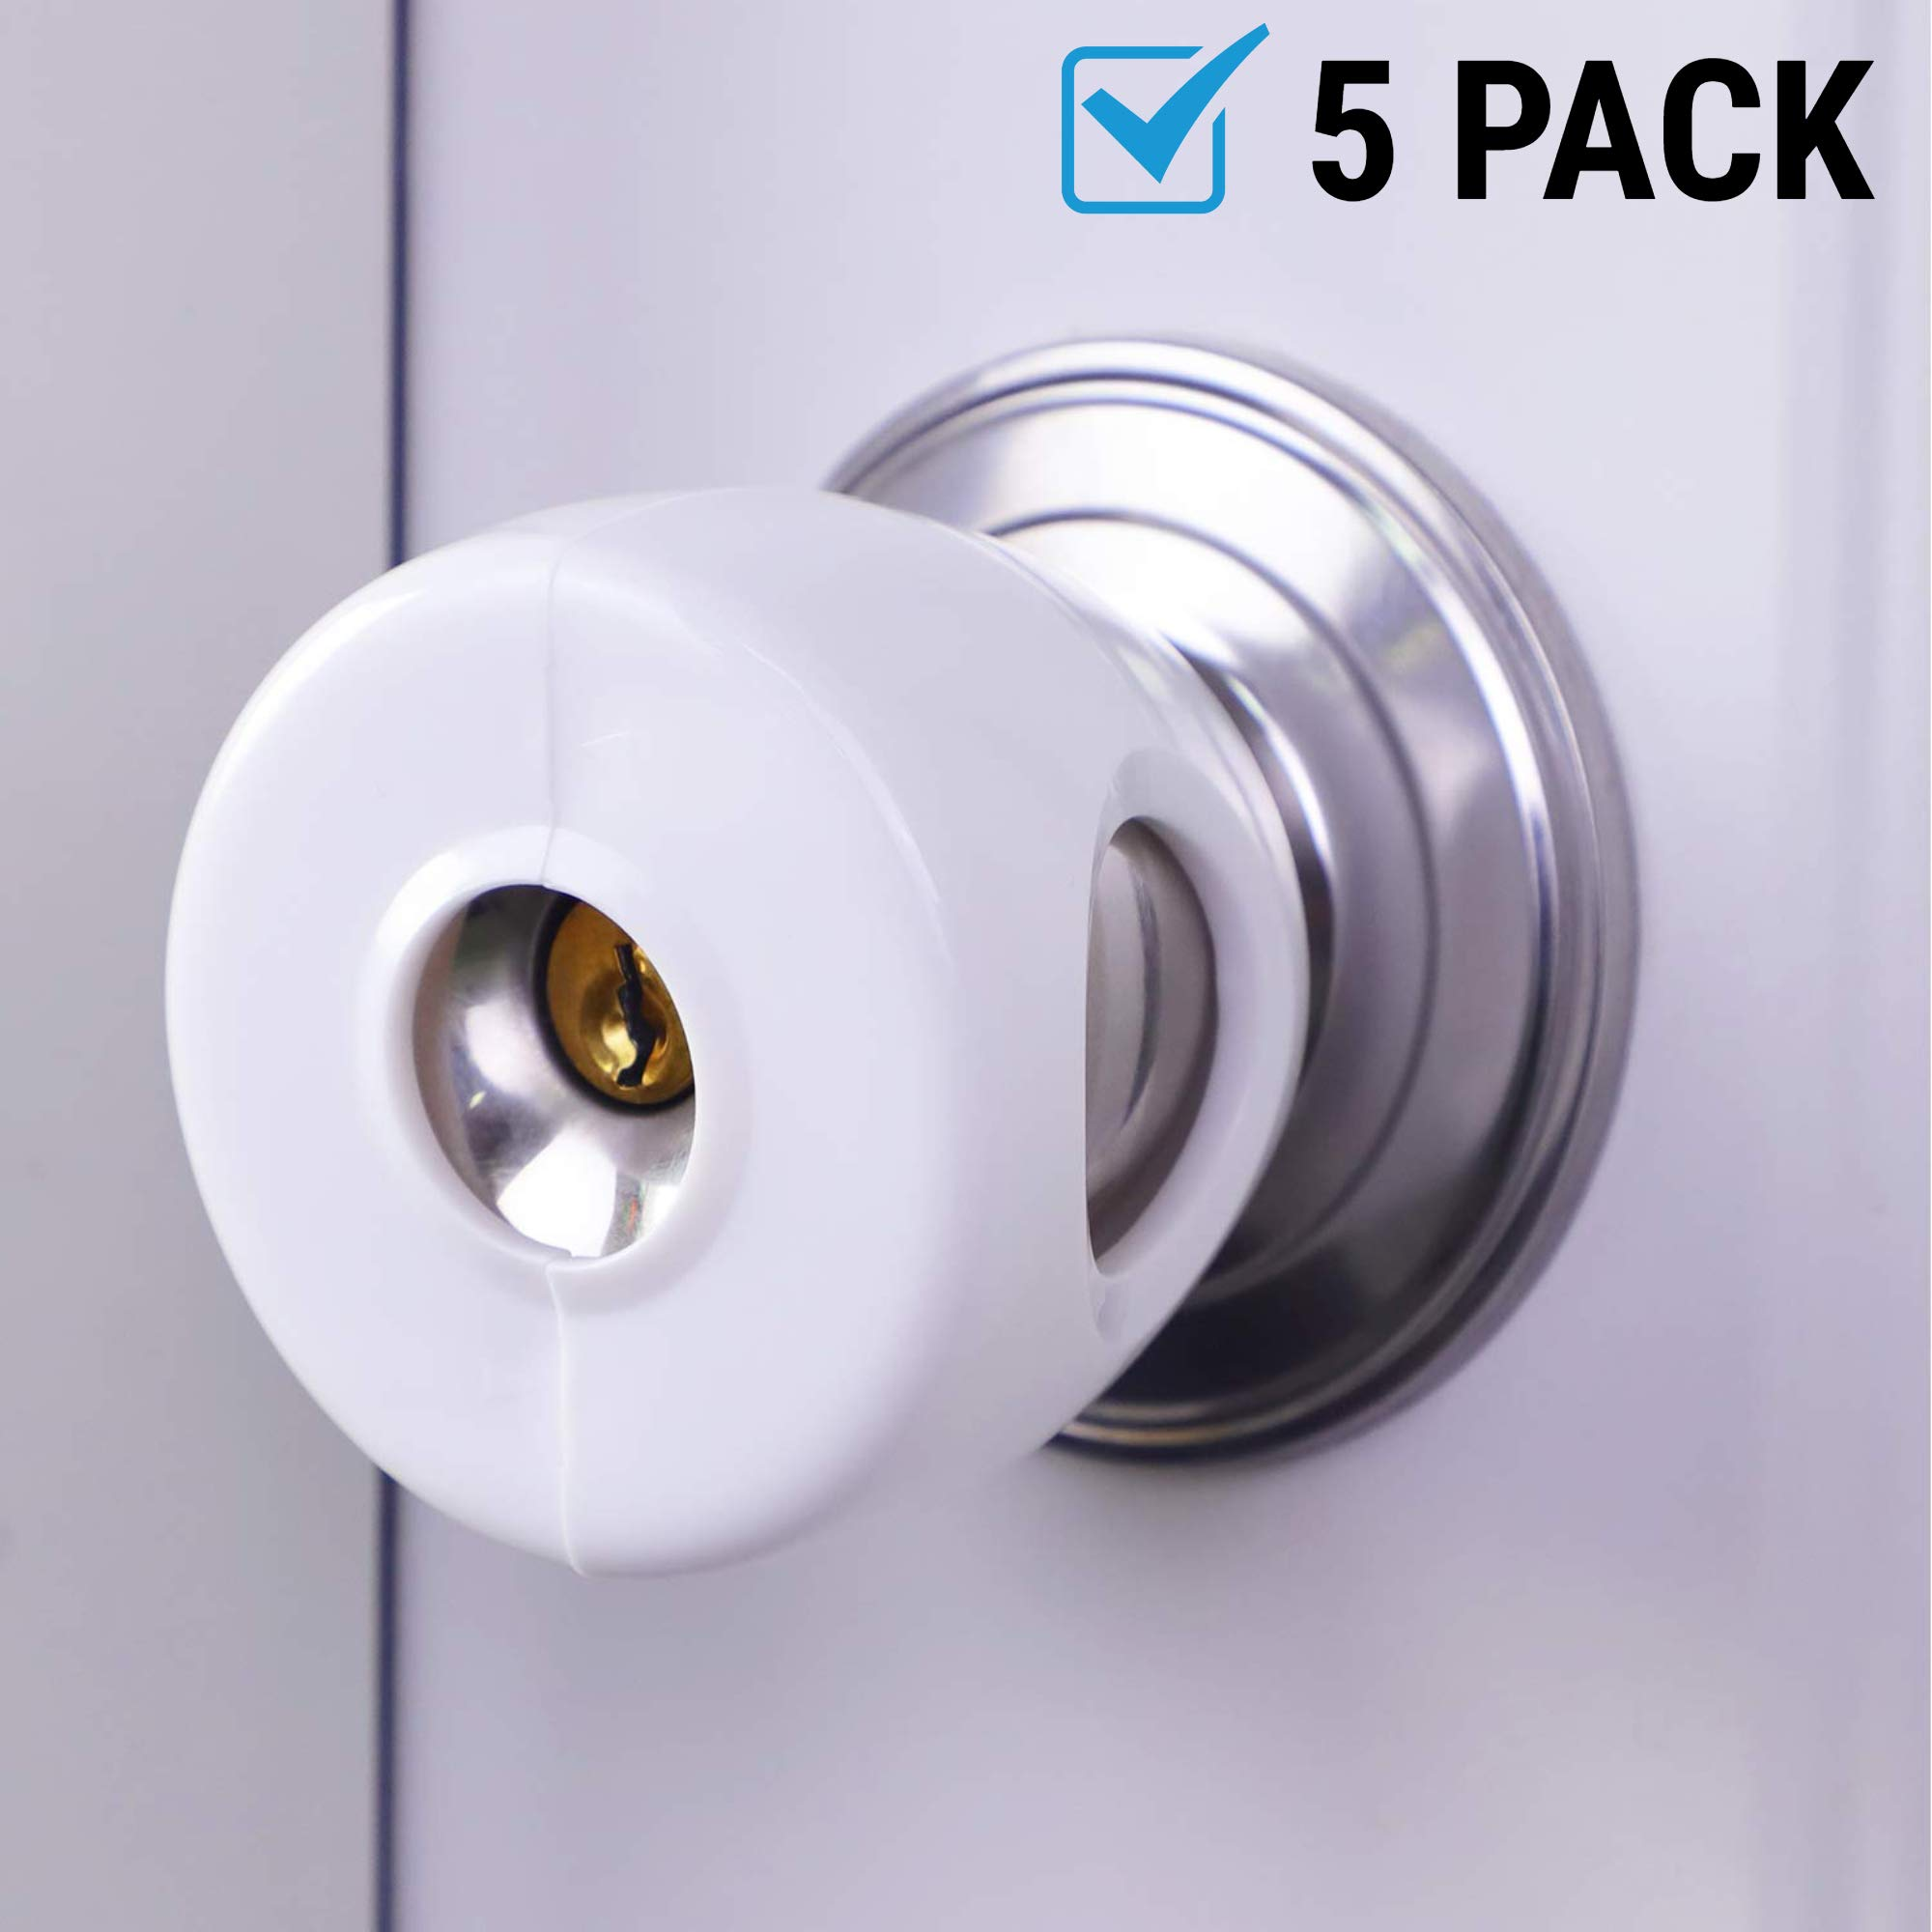 Door Knob Covers | 5 Pack - Child Safety Cover | Child Proof Doors by ClipGrip